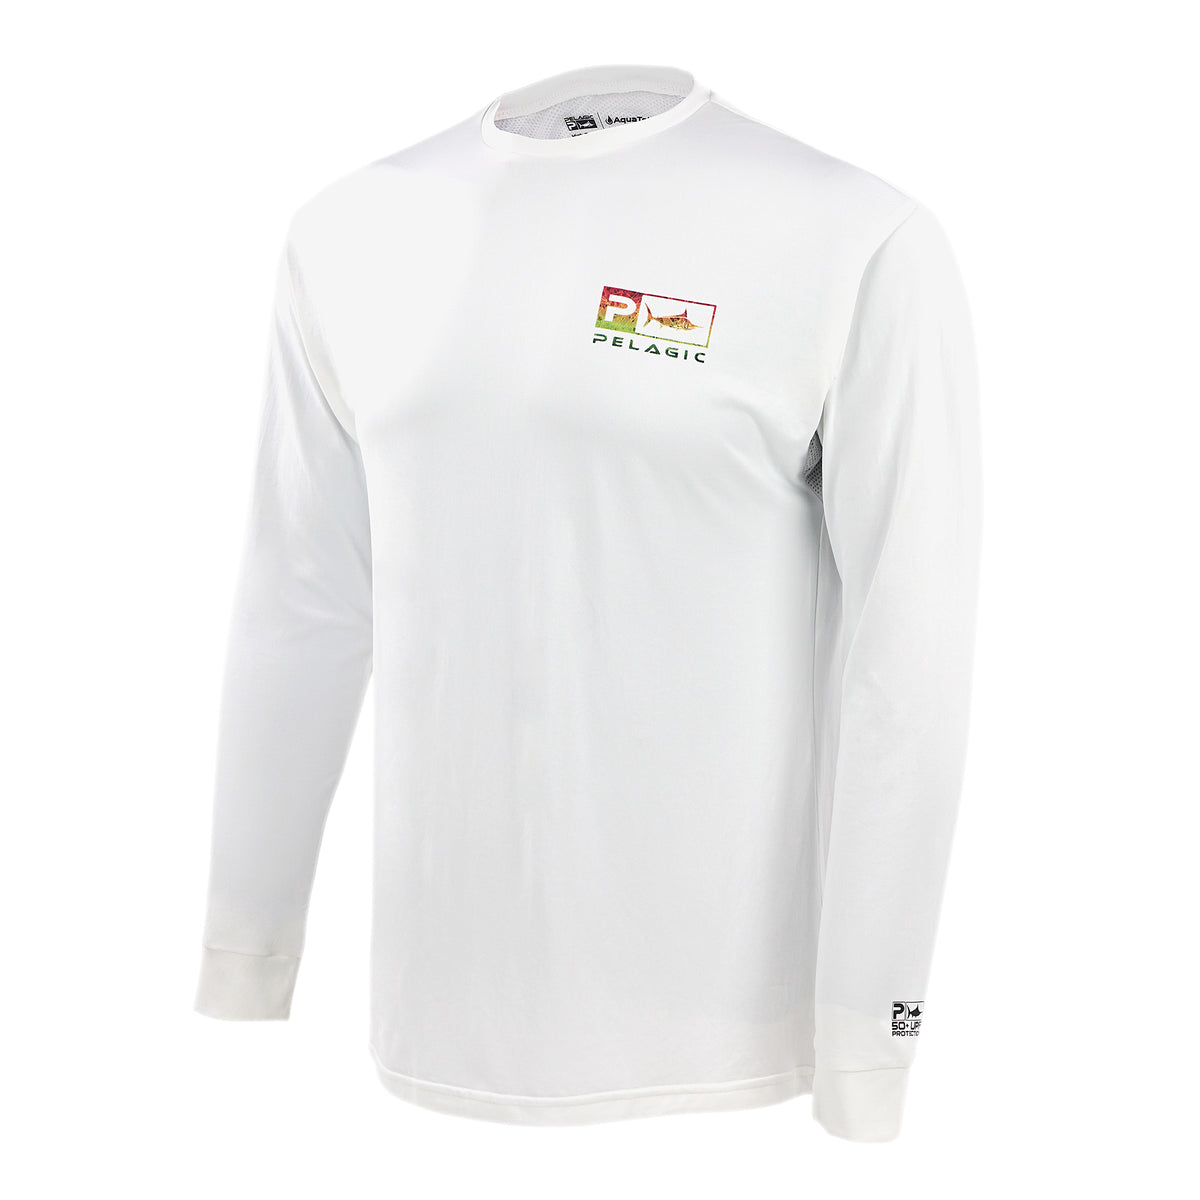 Aquatek Icon Long Sleeve Performance Shirt Big Image - 2